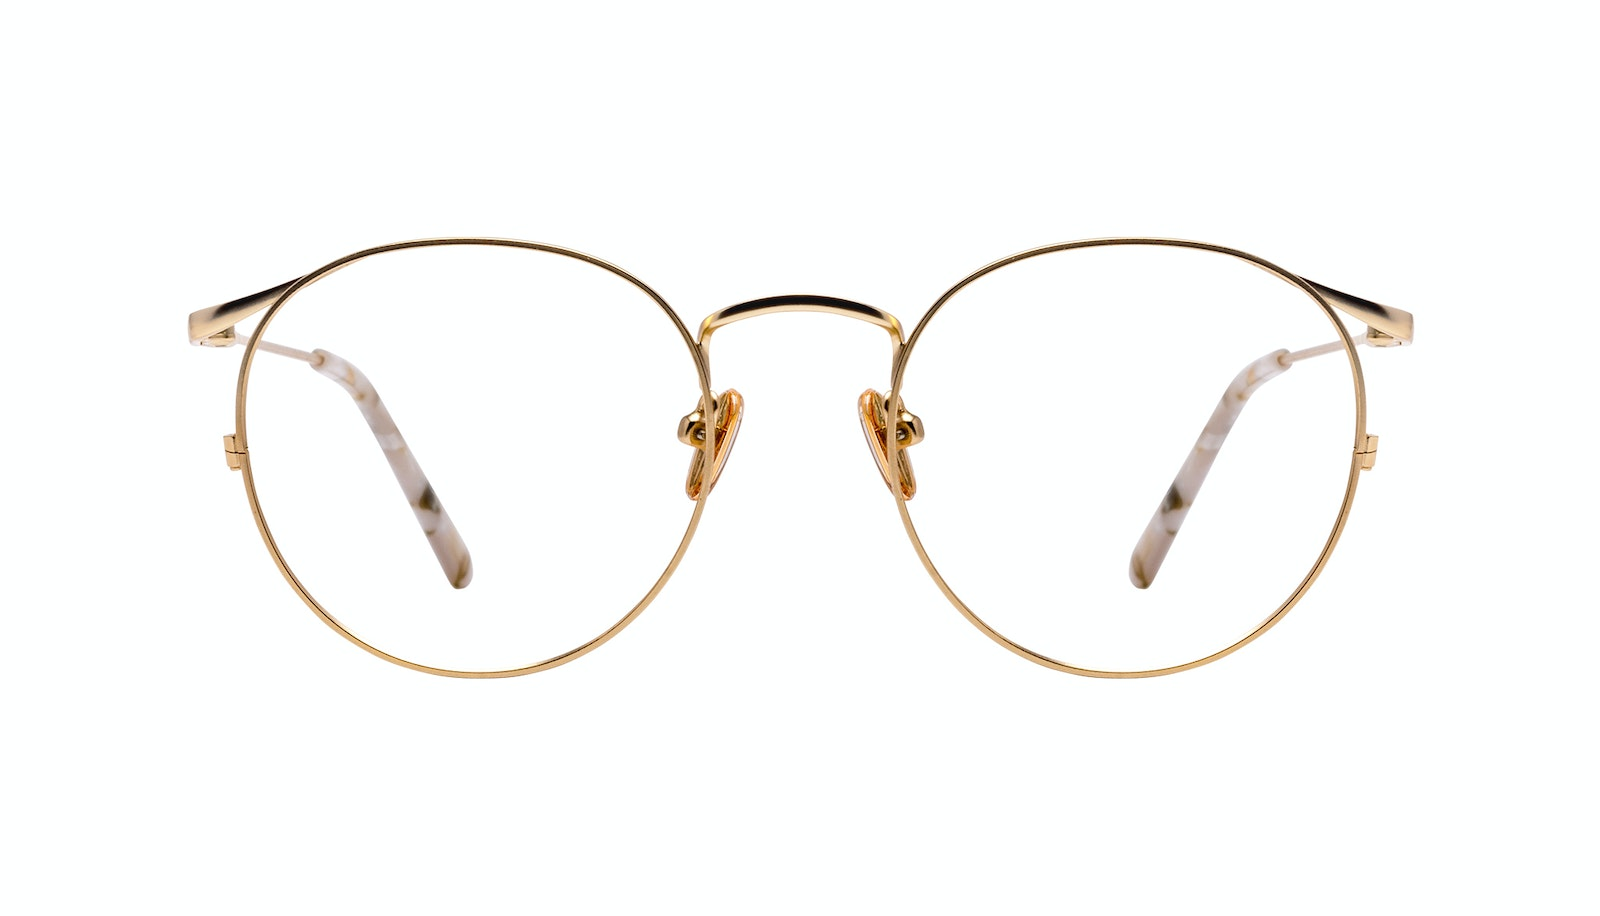 Affordable Fashion Glasses Round Eyeglasses Women Curve Gold